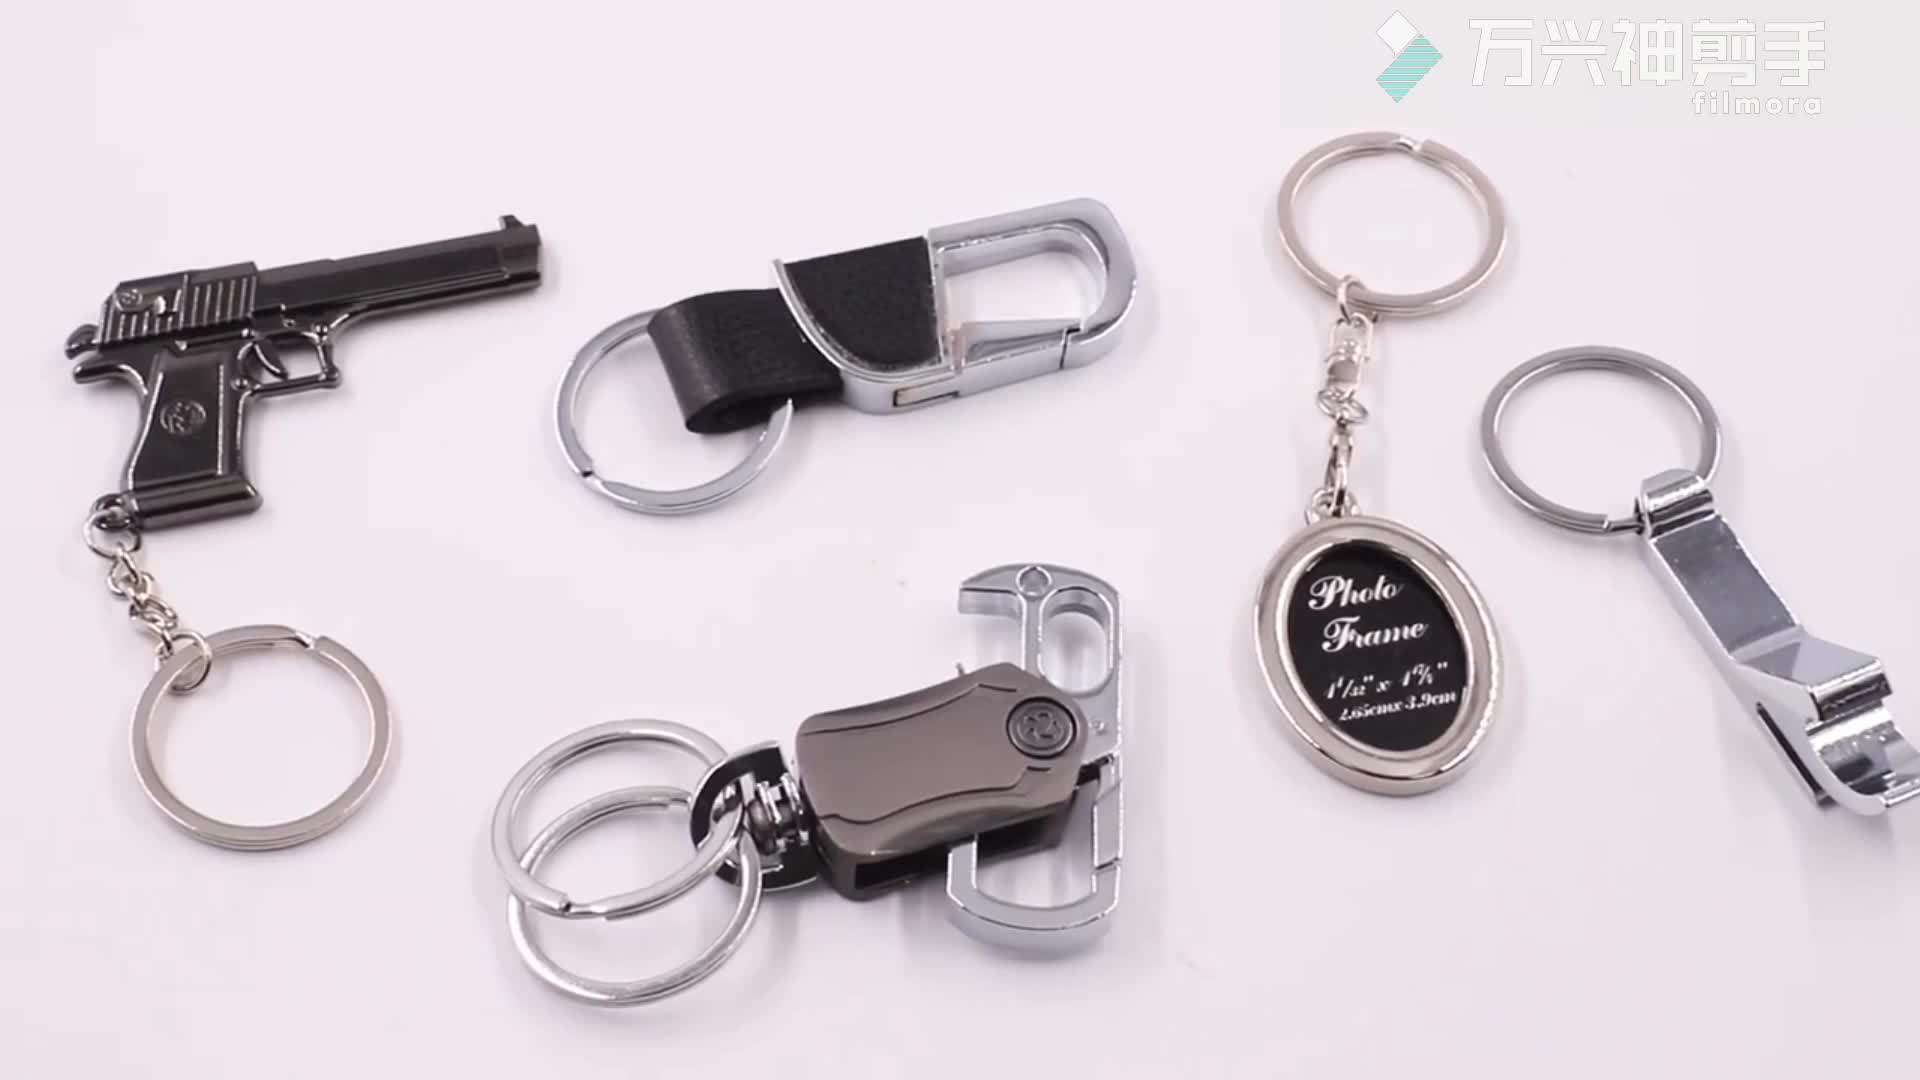 Cheap custom shaped made blank metal keychains without mold charge